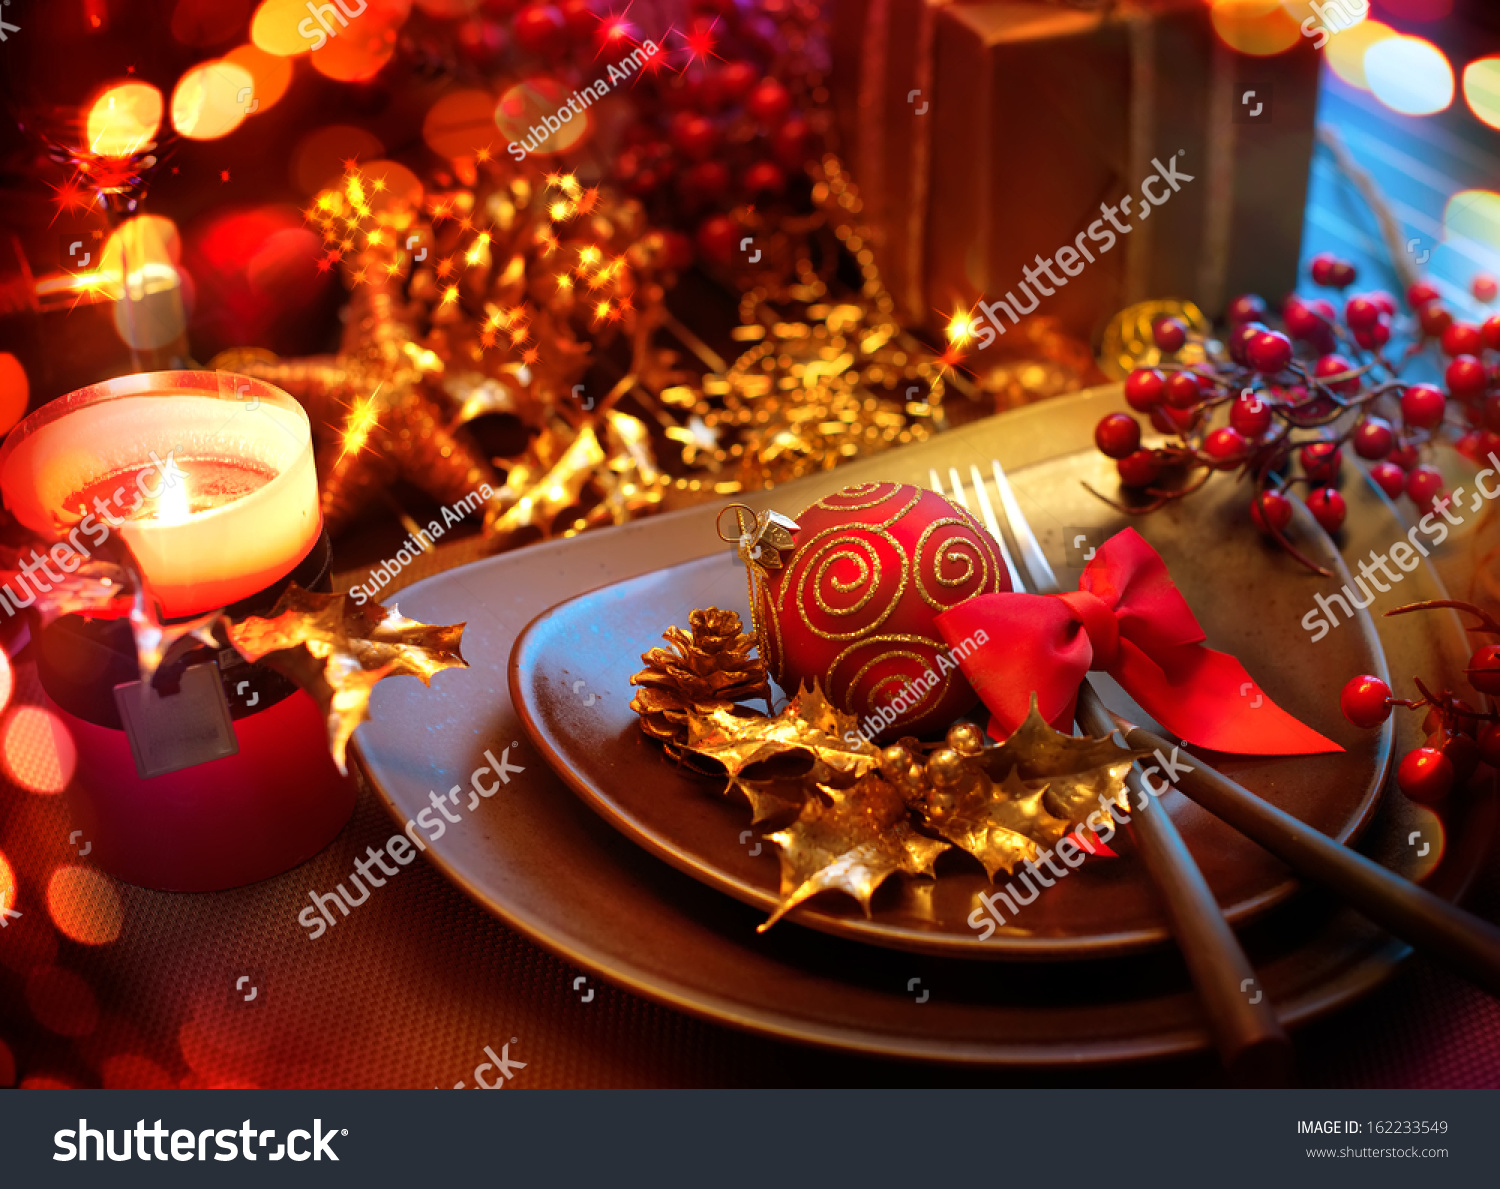 Christmas New Year Holiday Table Setting Stock Photo ...